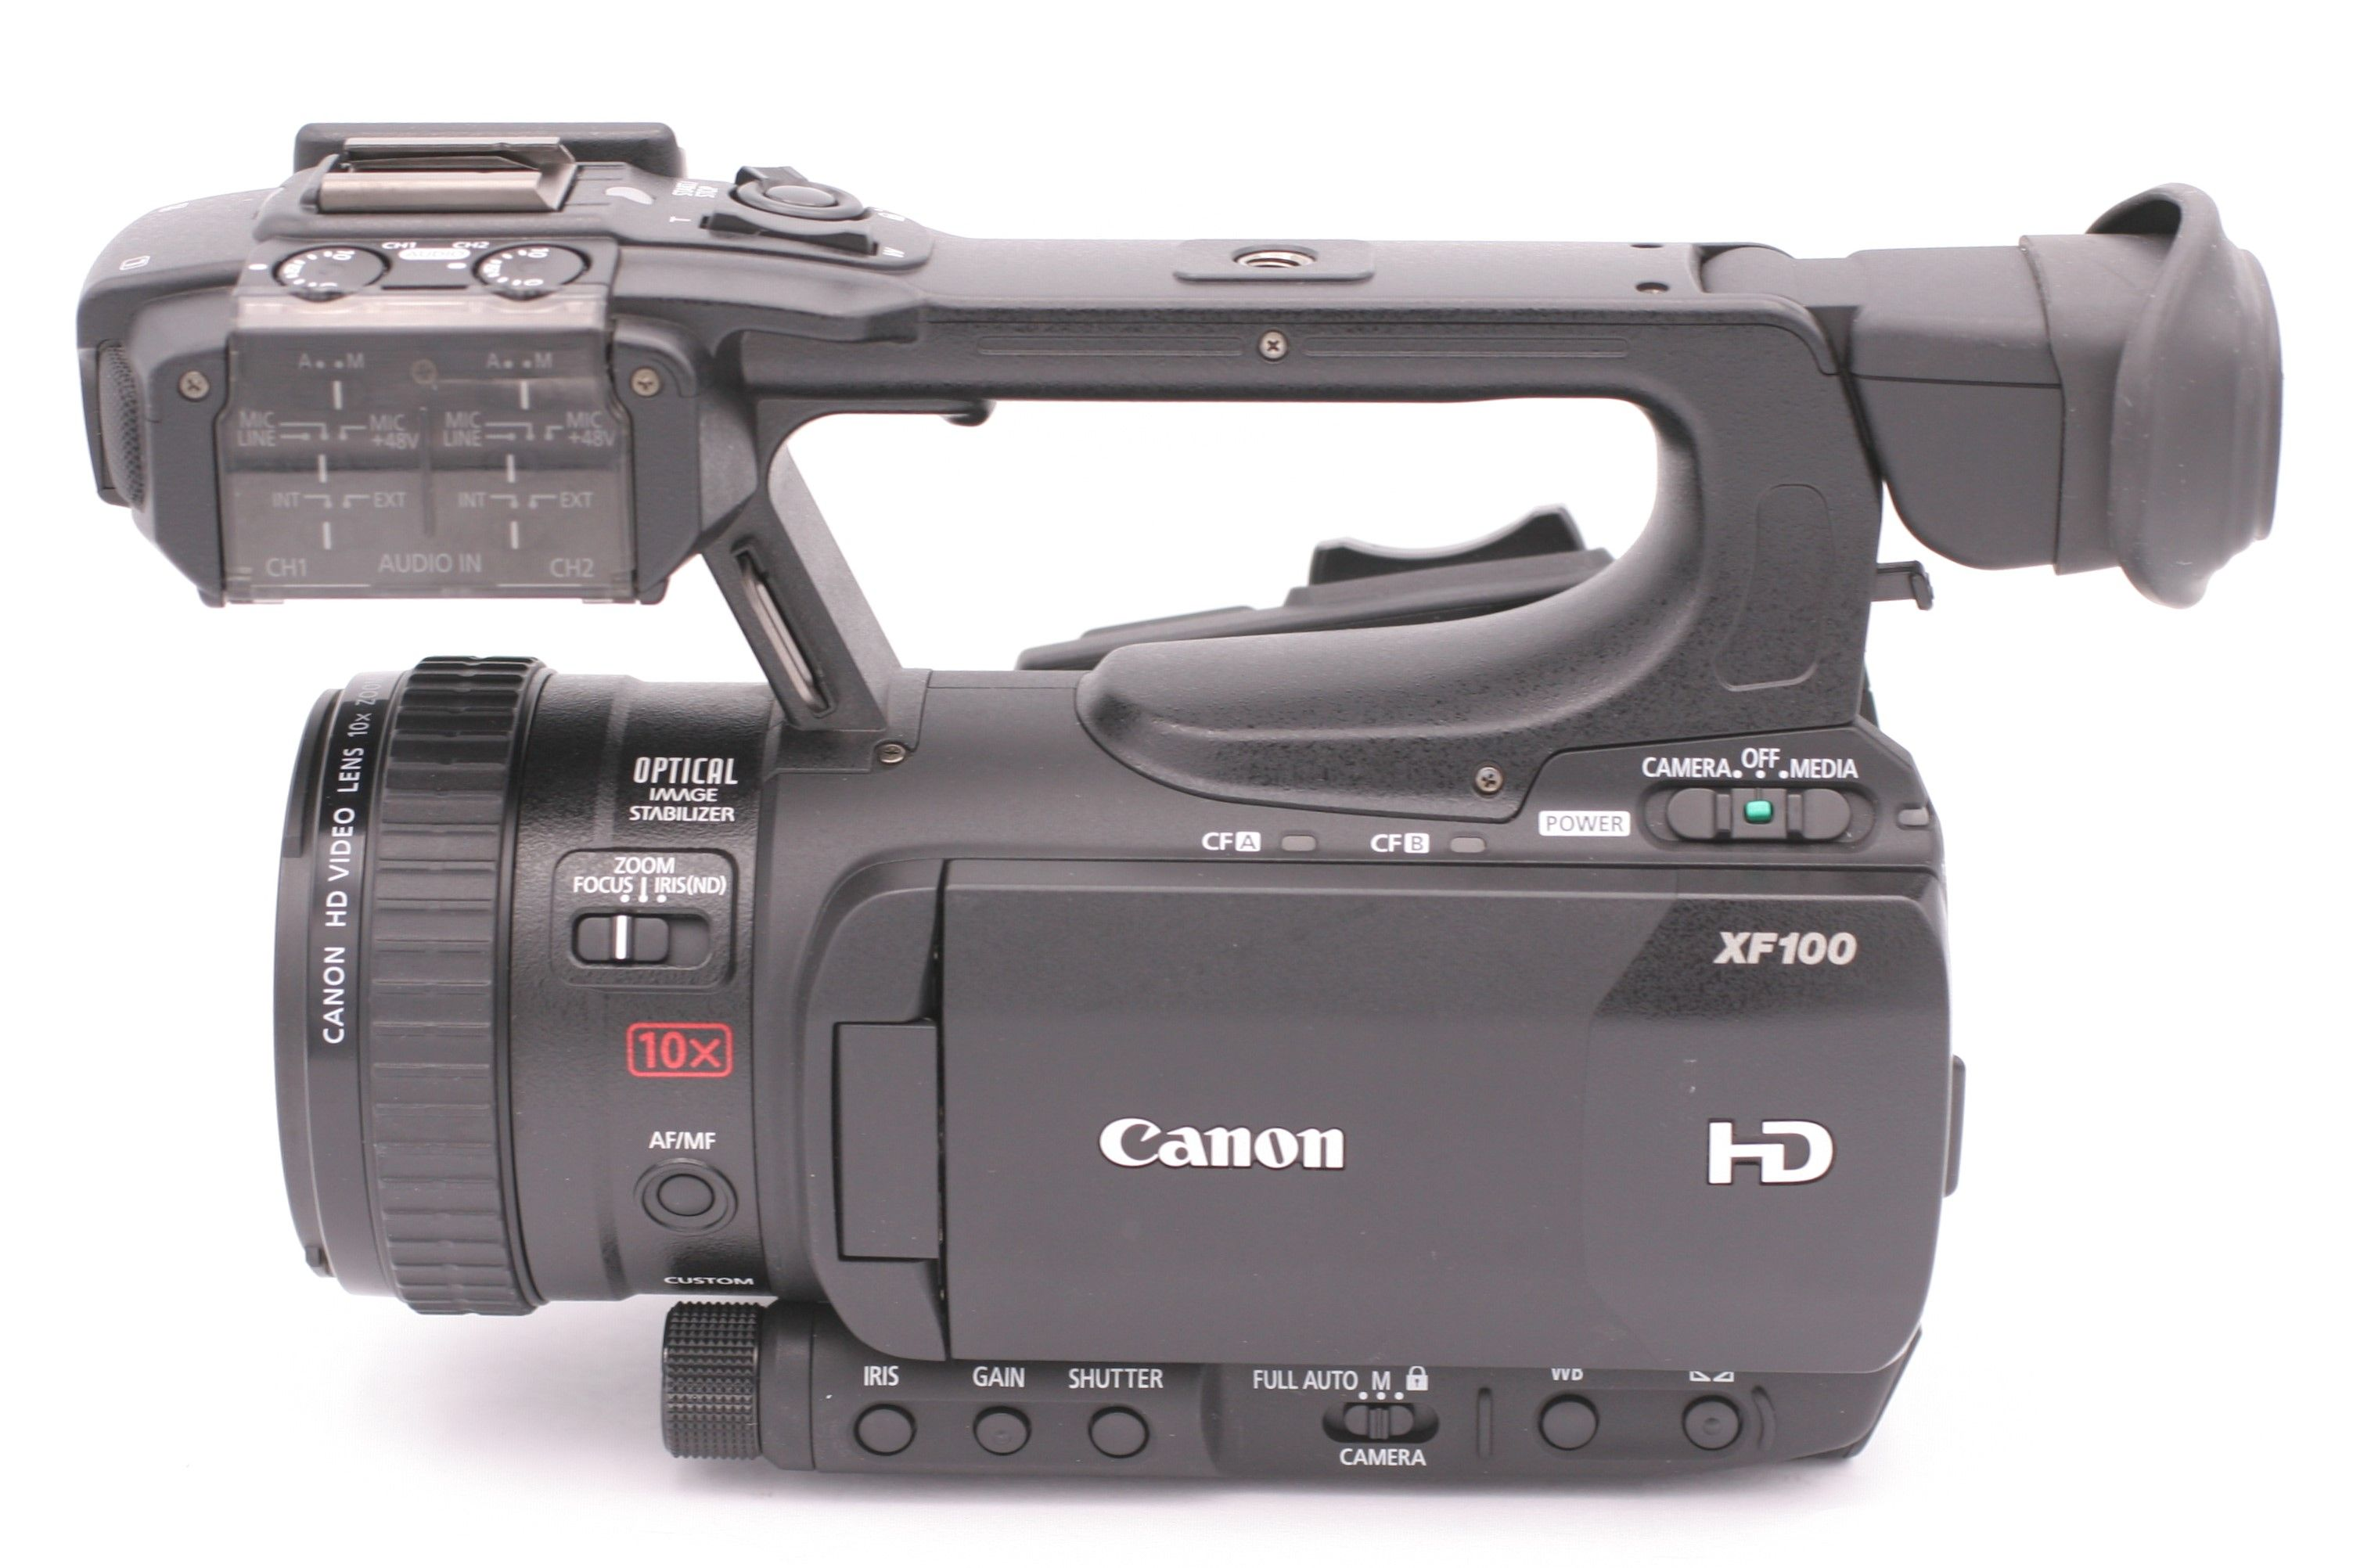 Details about Canon XF100 Professional (32 GB) HD 3D Camcorder Video Camera  - Black